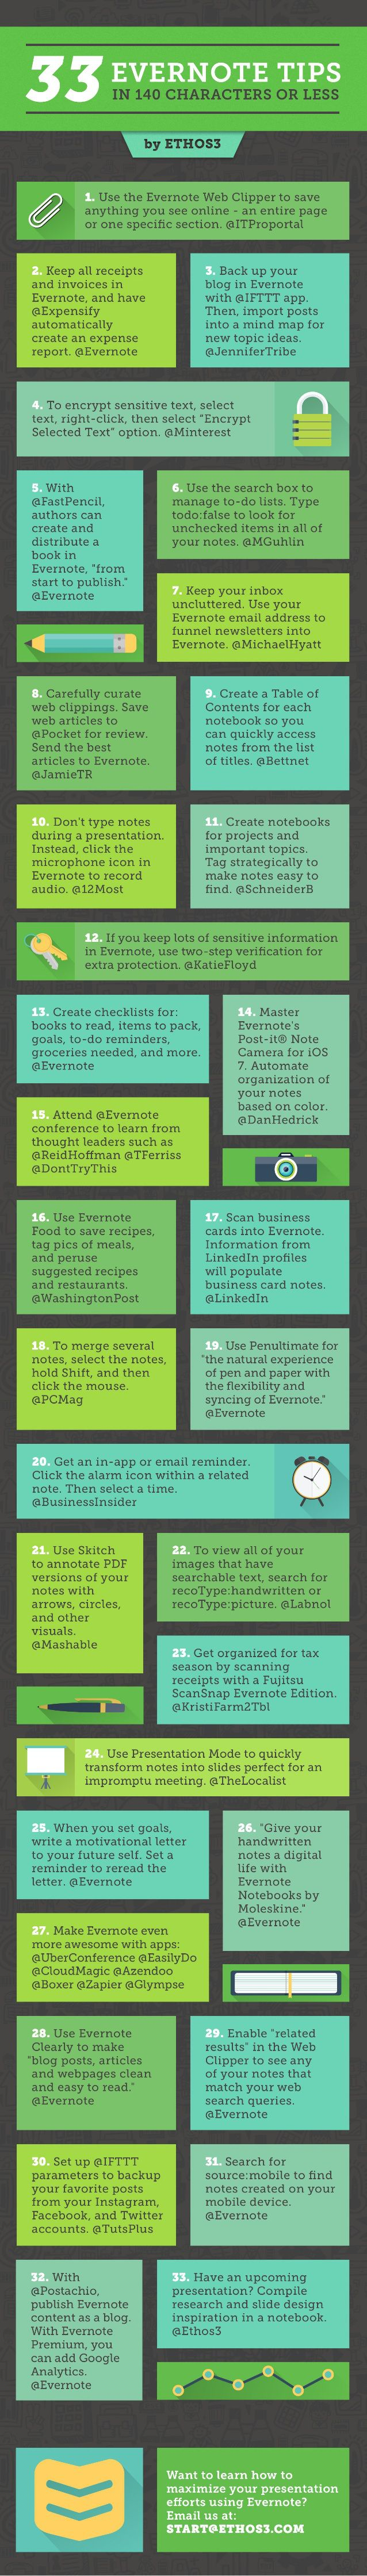 33 evernote tips infographic work pinterest produtividade 33 evernote tips infographic reheart Image collections